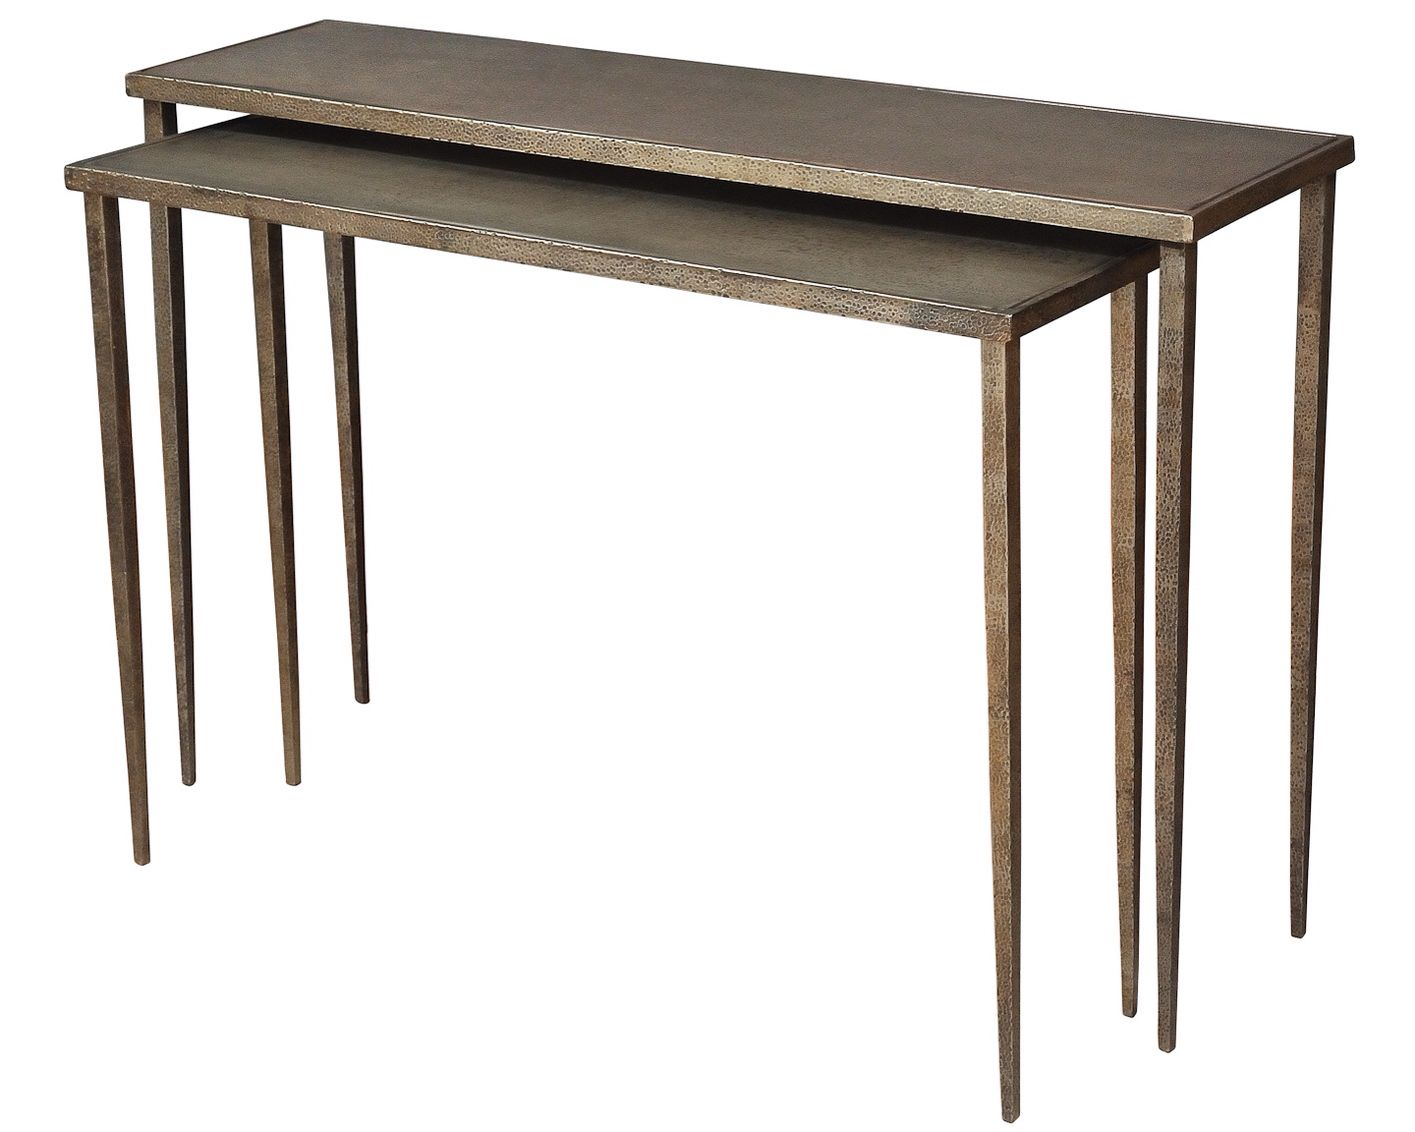 Hammered Sheet Metal Console Tables | My Designs | Pinterest with Parsons Grey Solid Surface Top & Stainless Steel Base 48X16 Console Tables (Image 18 of 30)